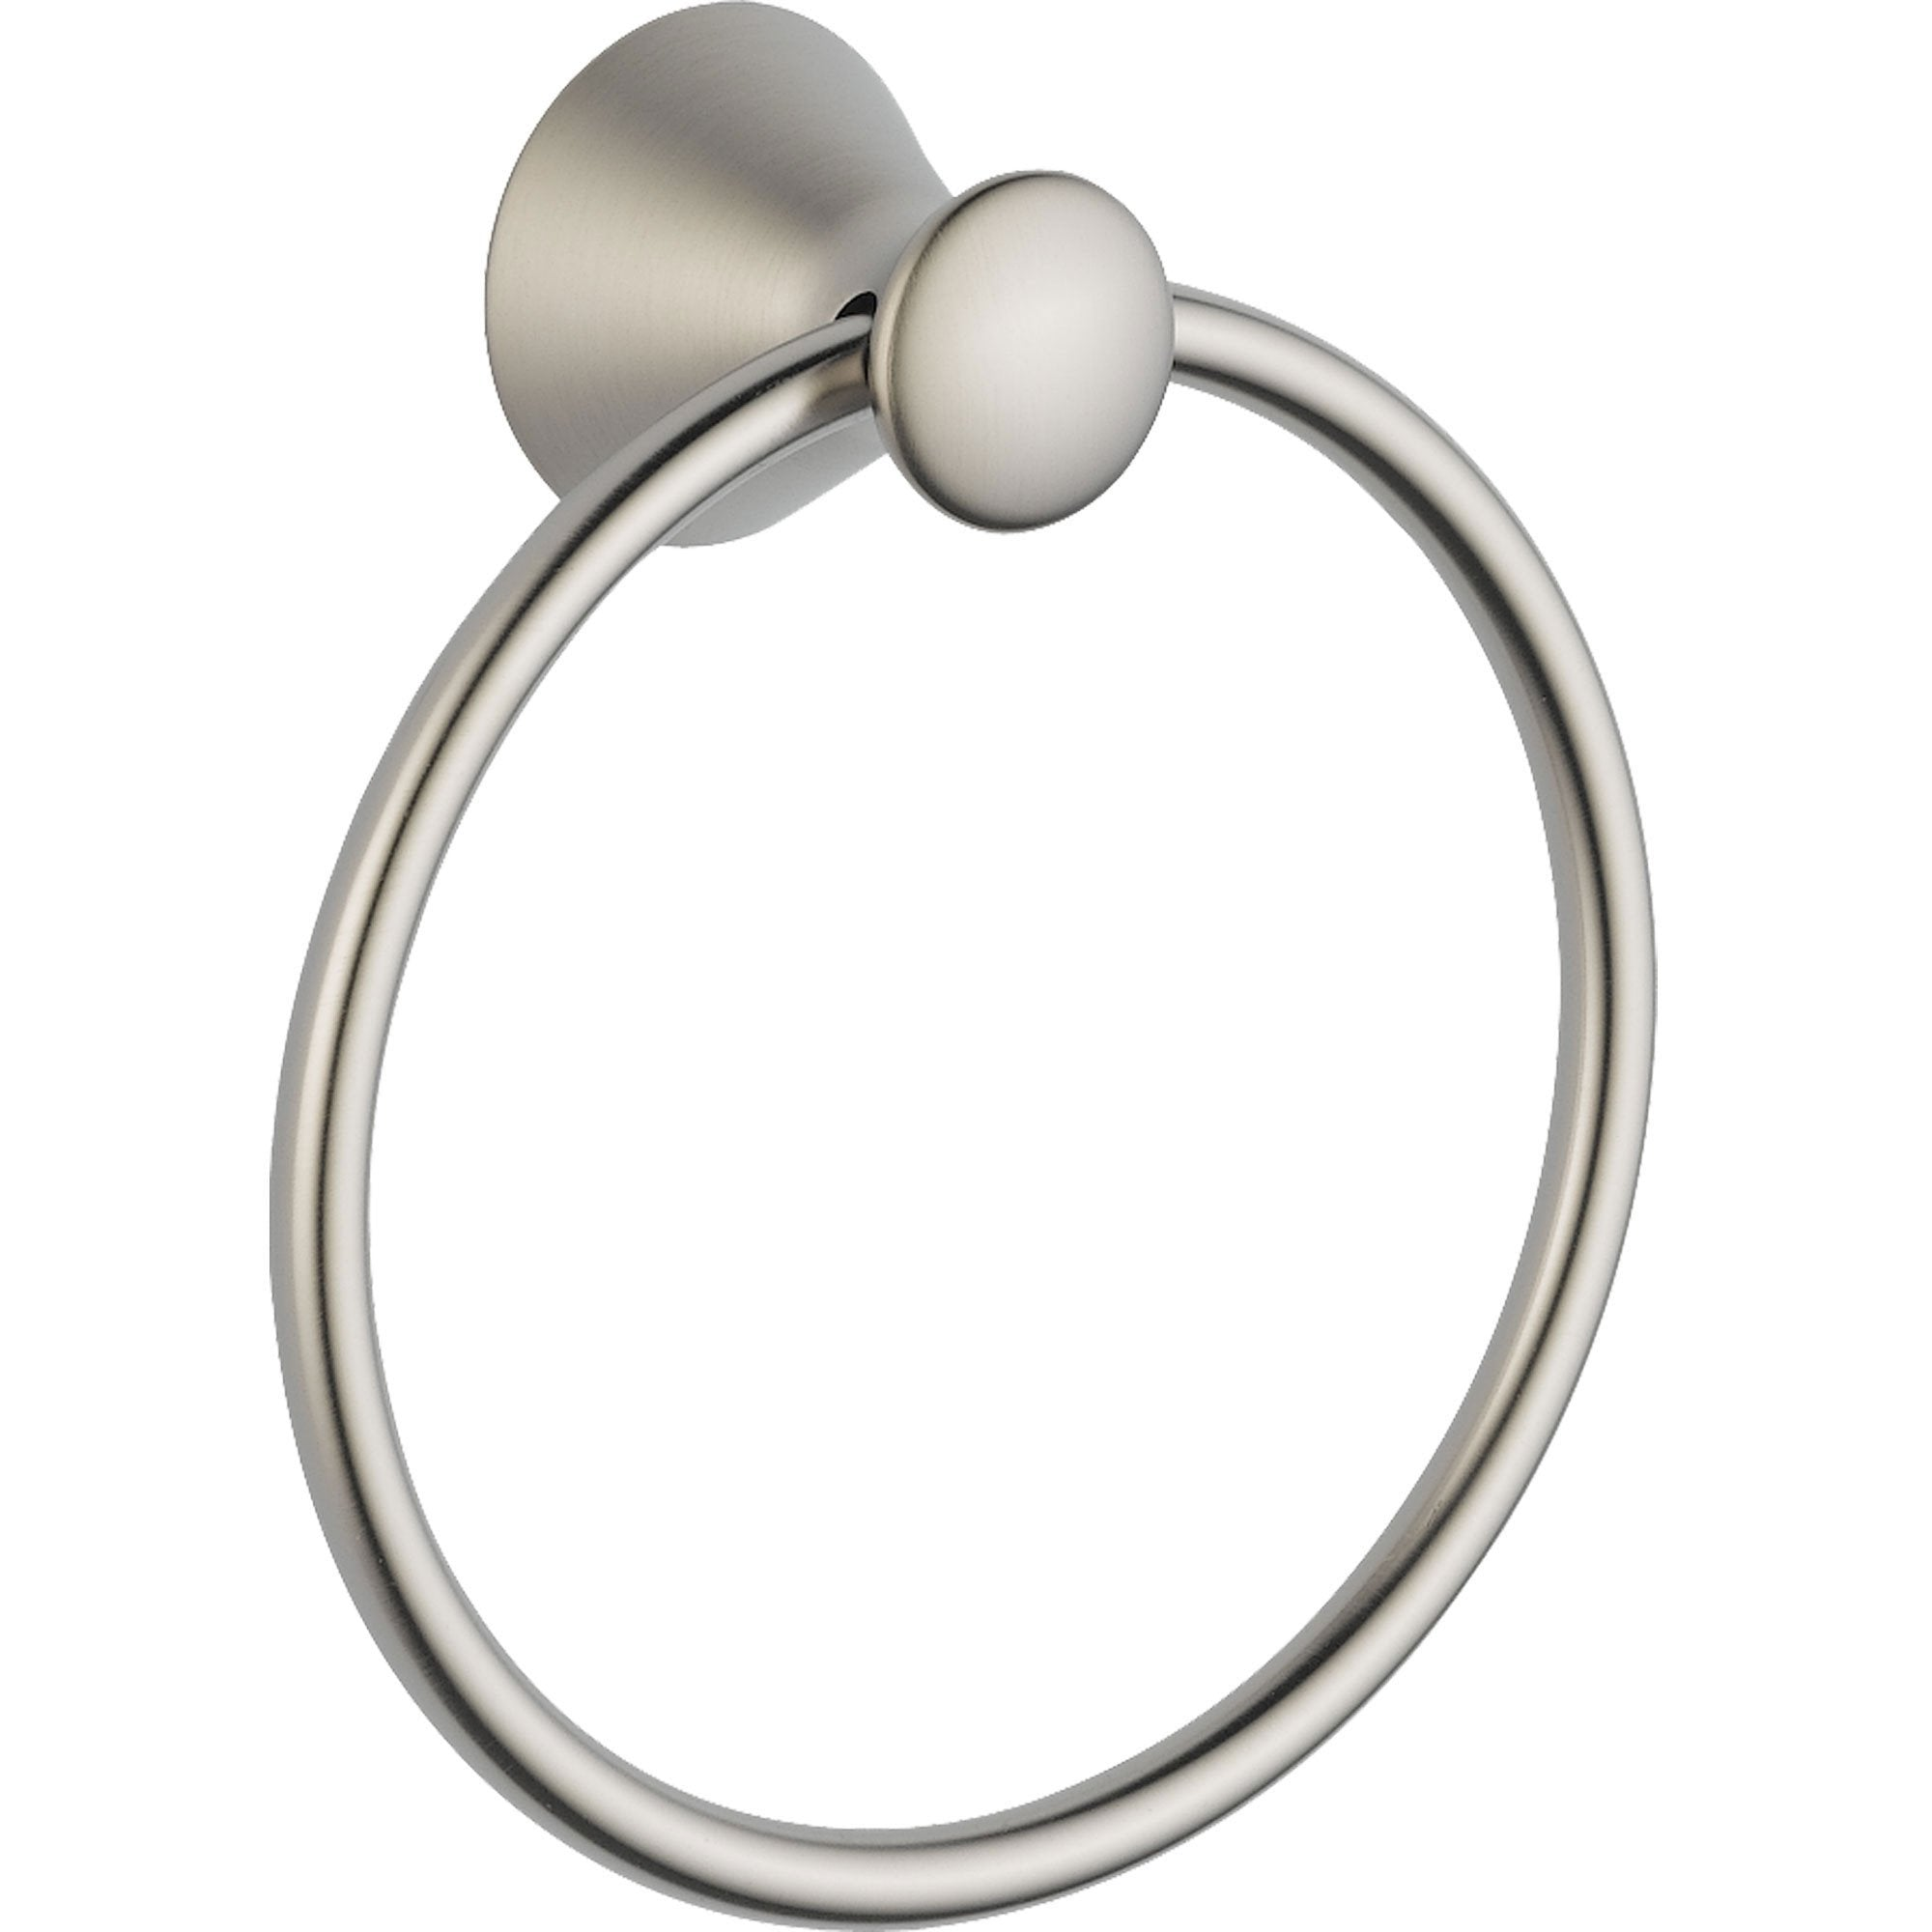 Delta Lahara Stainless Steel Finish Hand Towel Ring 338453